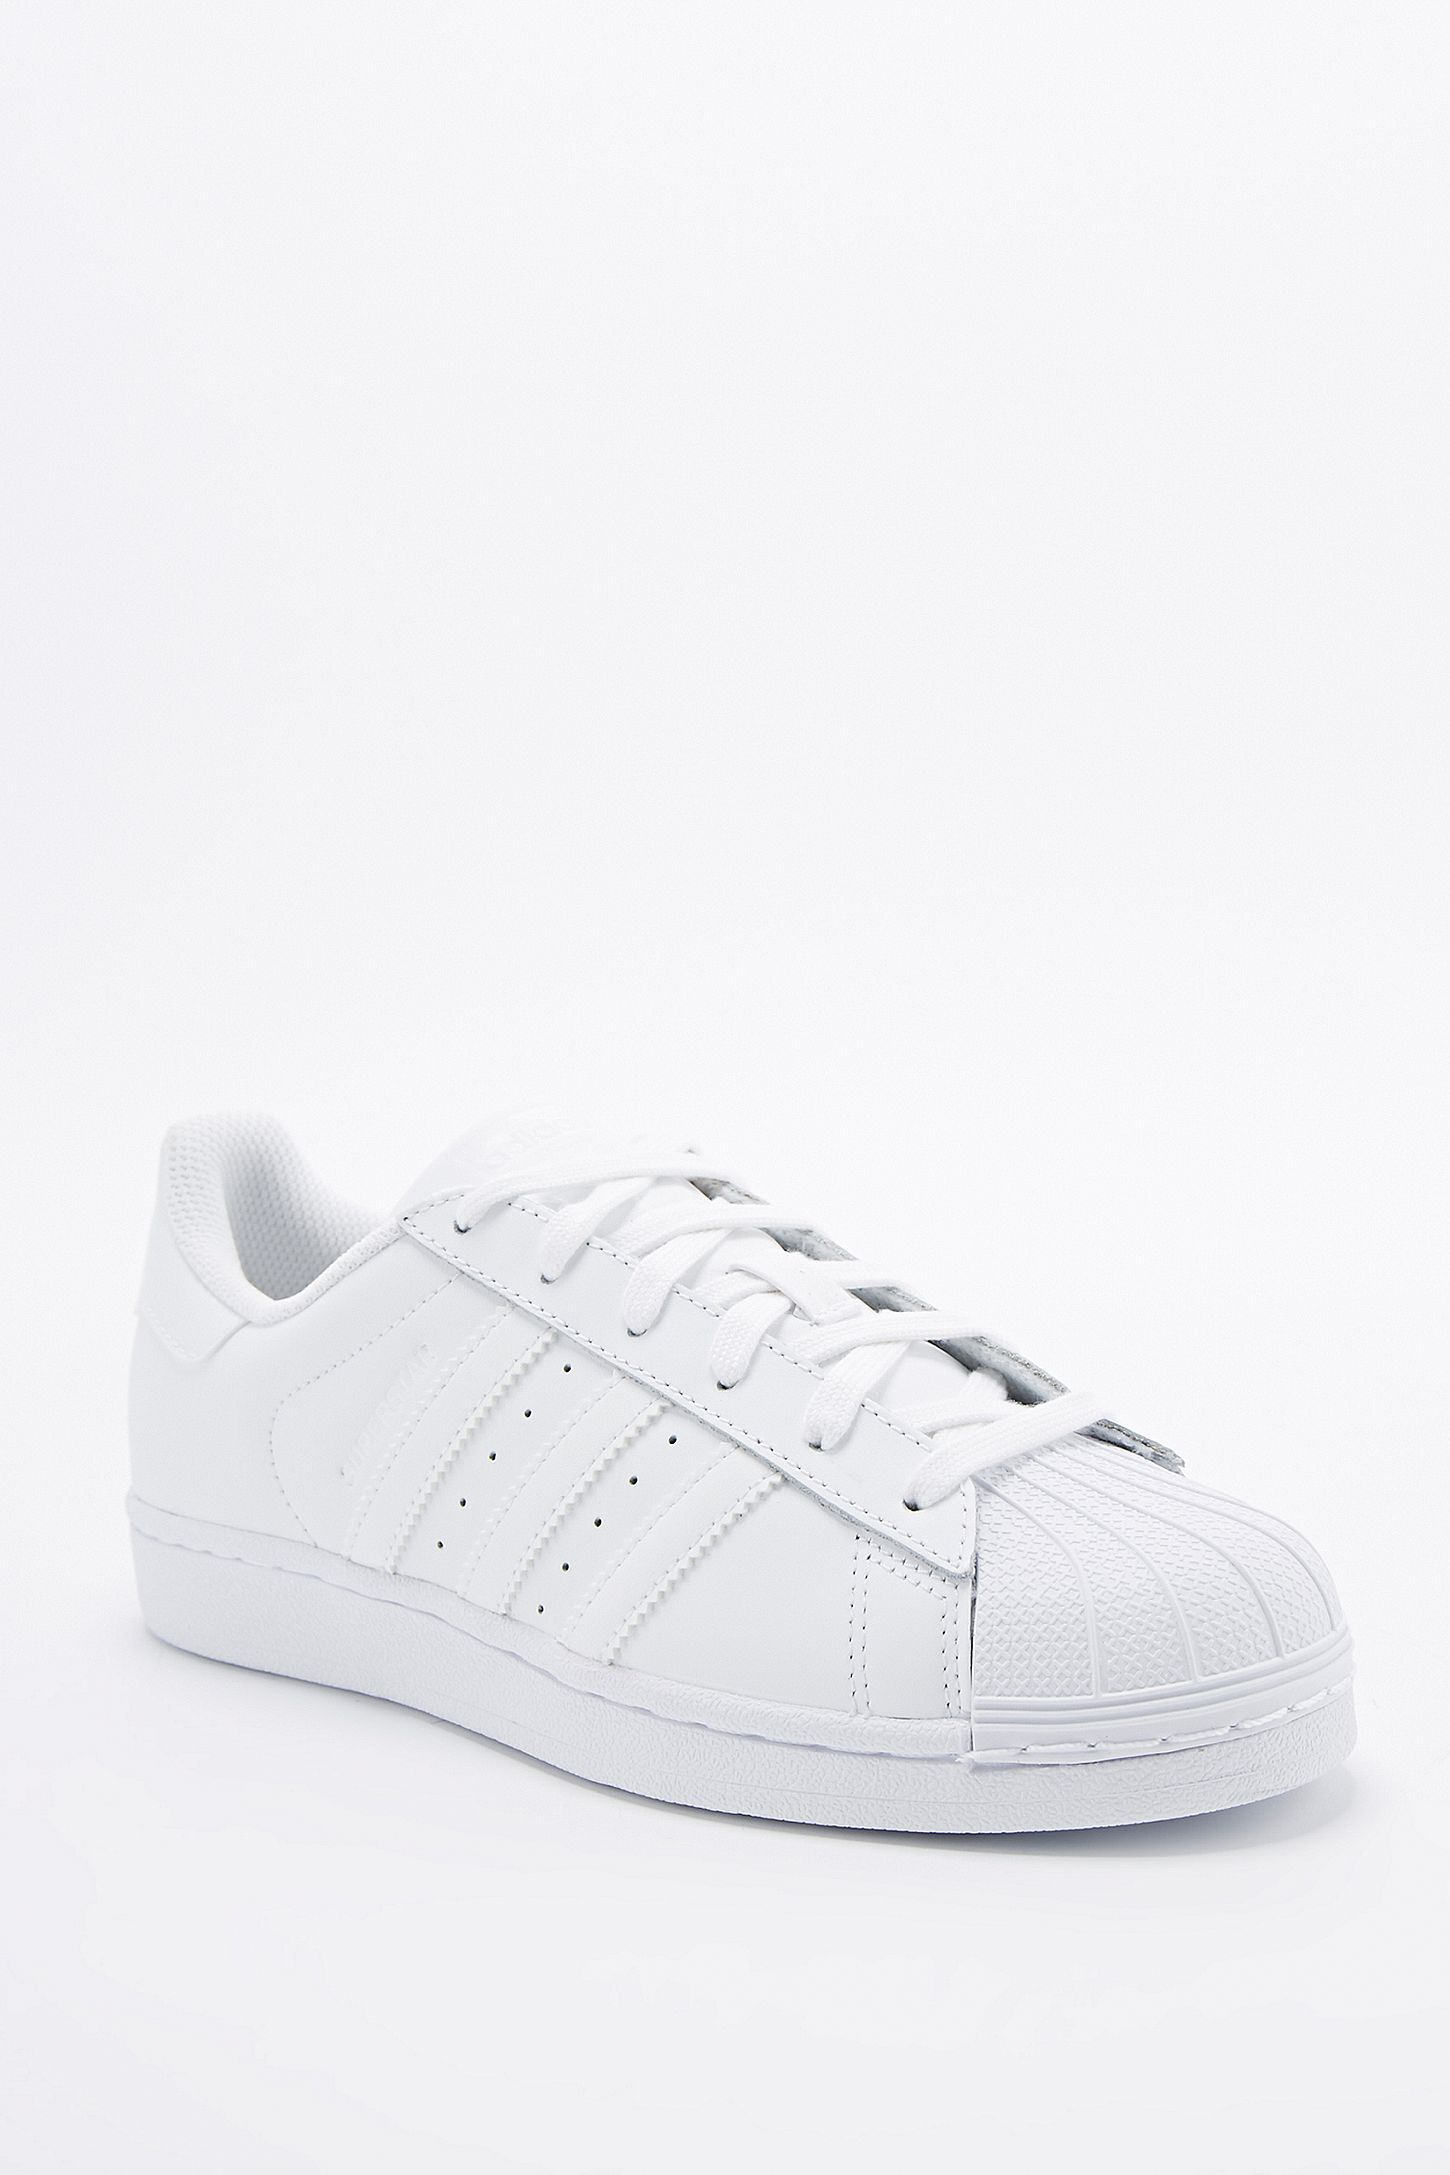 finest selection 73a6e 2fb80 adidas Originals Superstar 80s All-White Trainers. Click on image to zoom.  Hover to zoom. Double Tap to Zoom